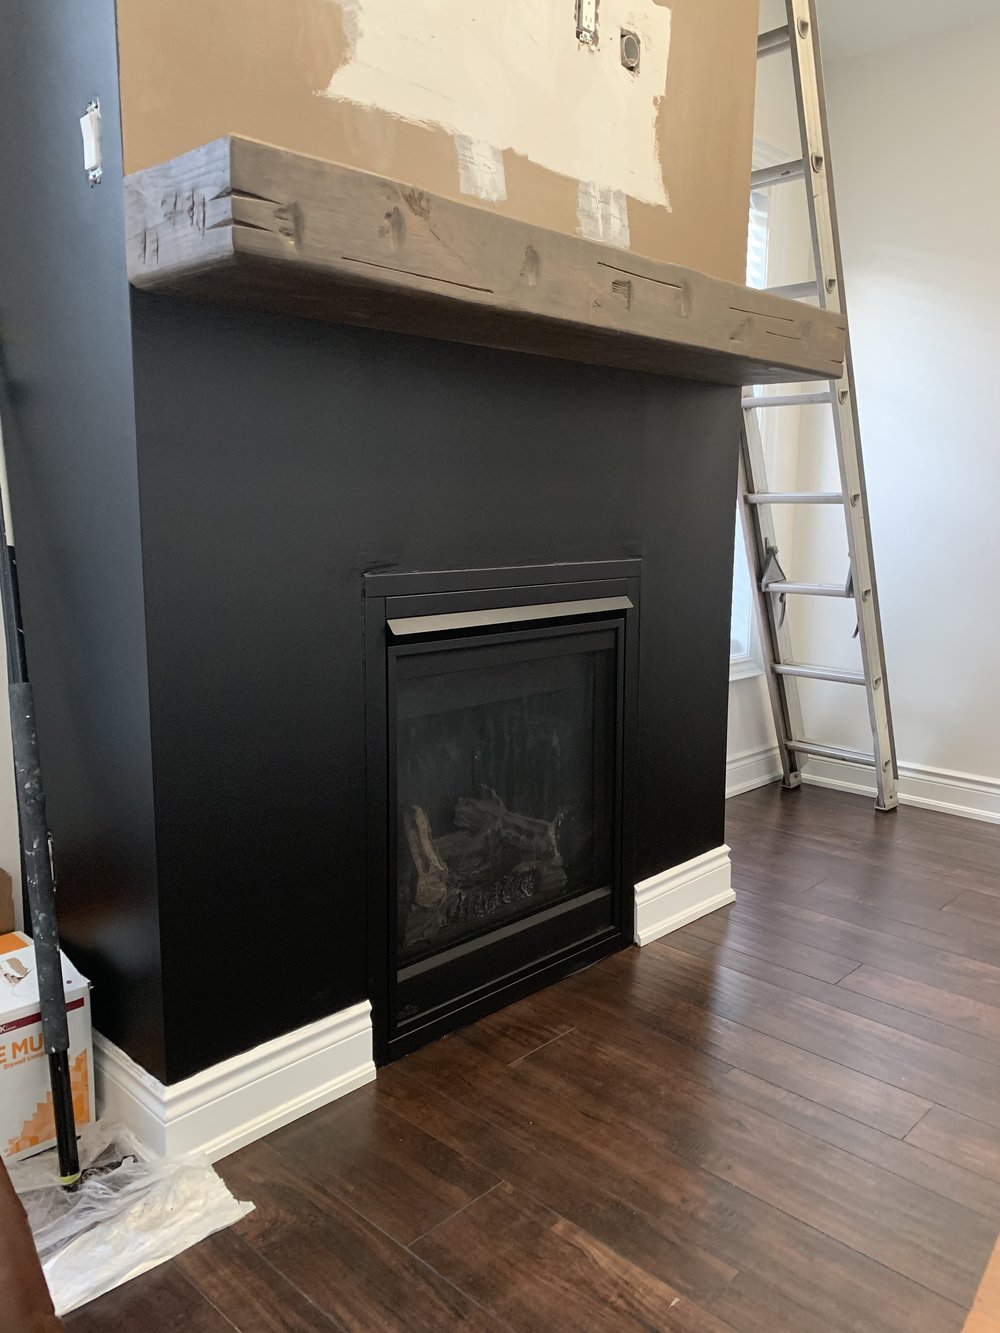 At this point we decided the trim around the fireplace needed to be painted Limousine Leather too!